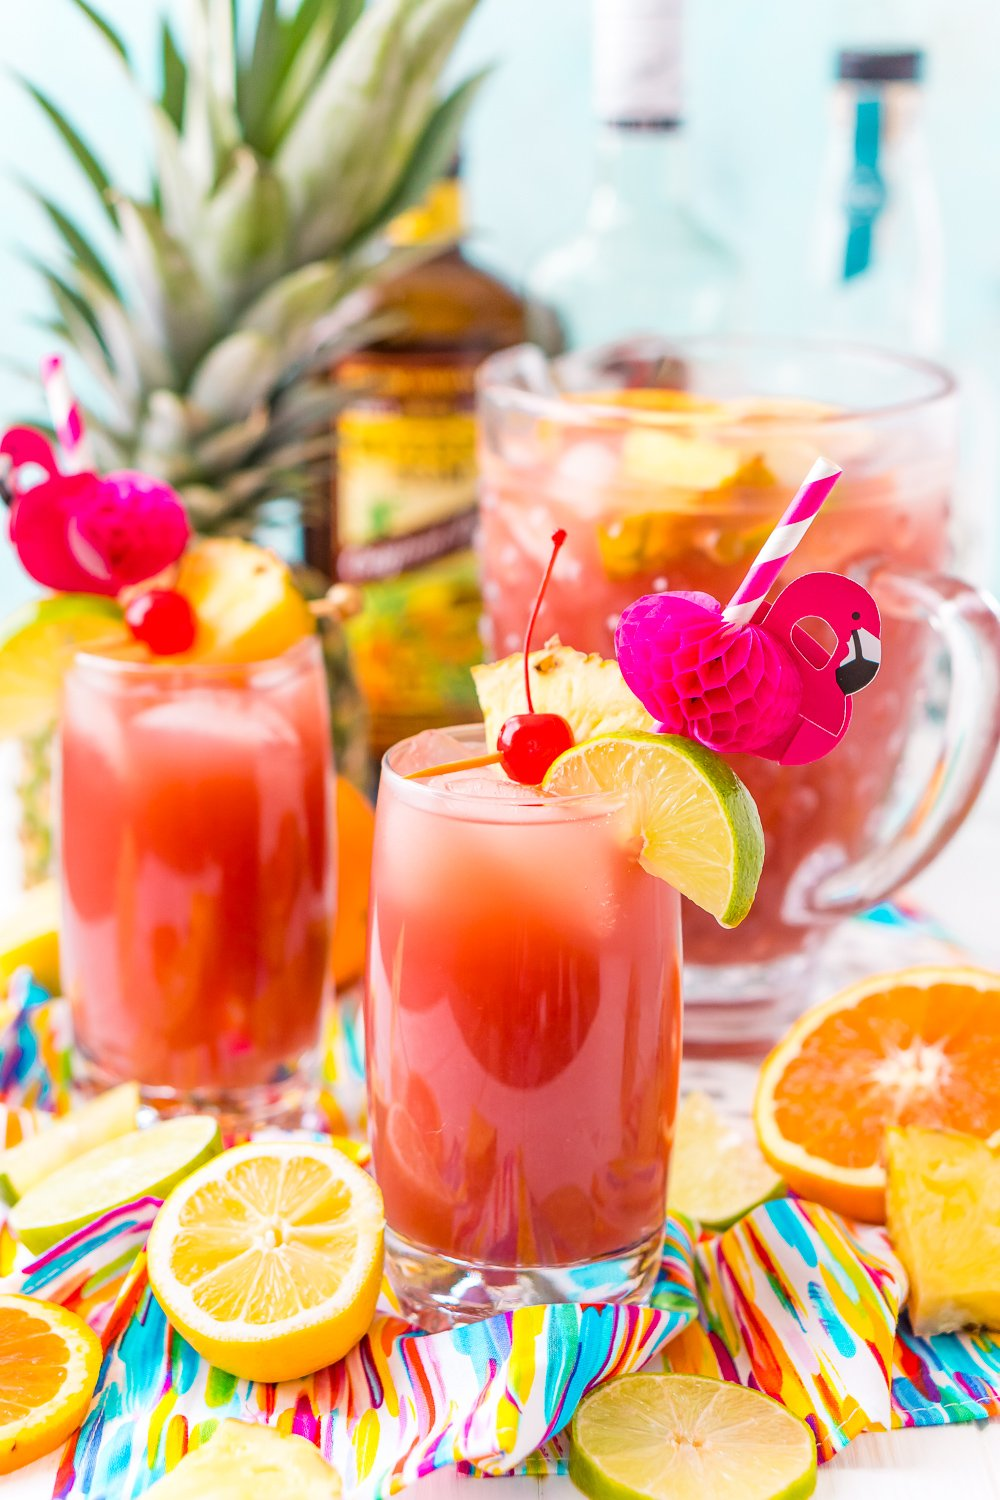 Glasses of rum punch with cherry, pineapple, and lime garnishes. Flamingo paper straws and a pitcher of punch in the background.